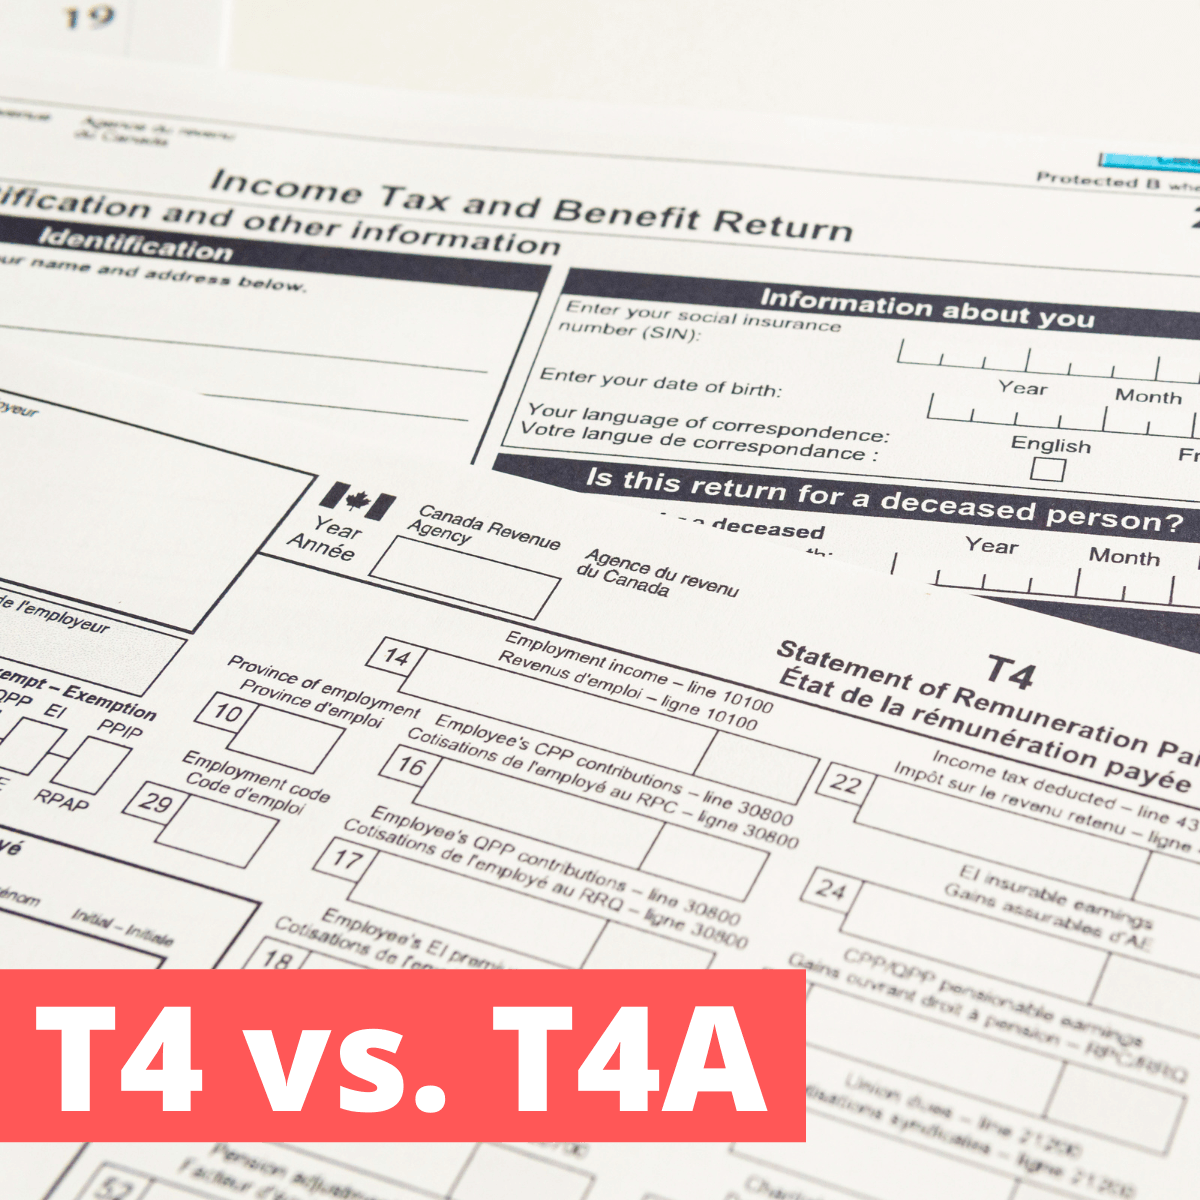 T4 vs. T4A: What's The Difference?